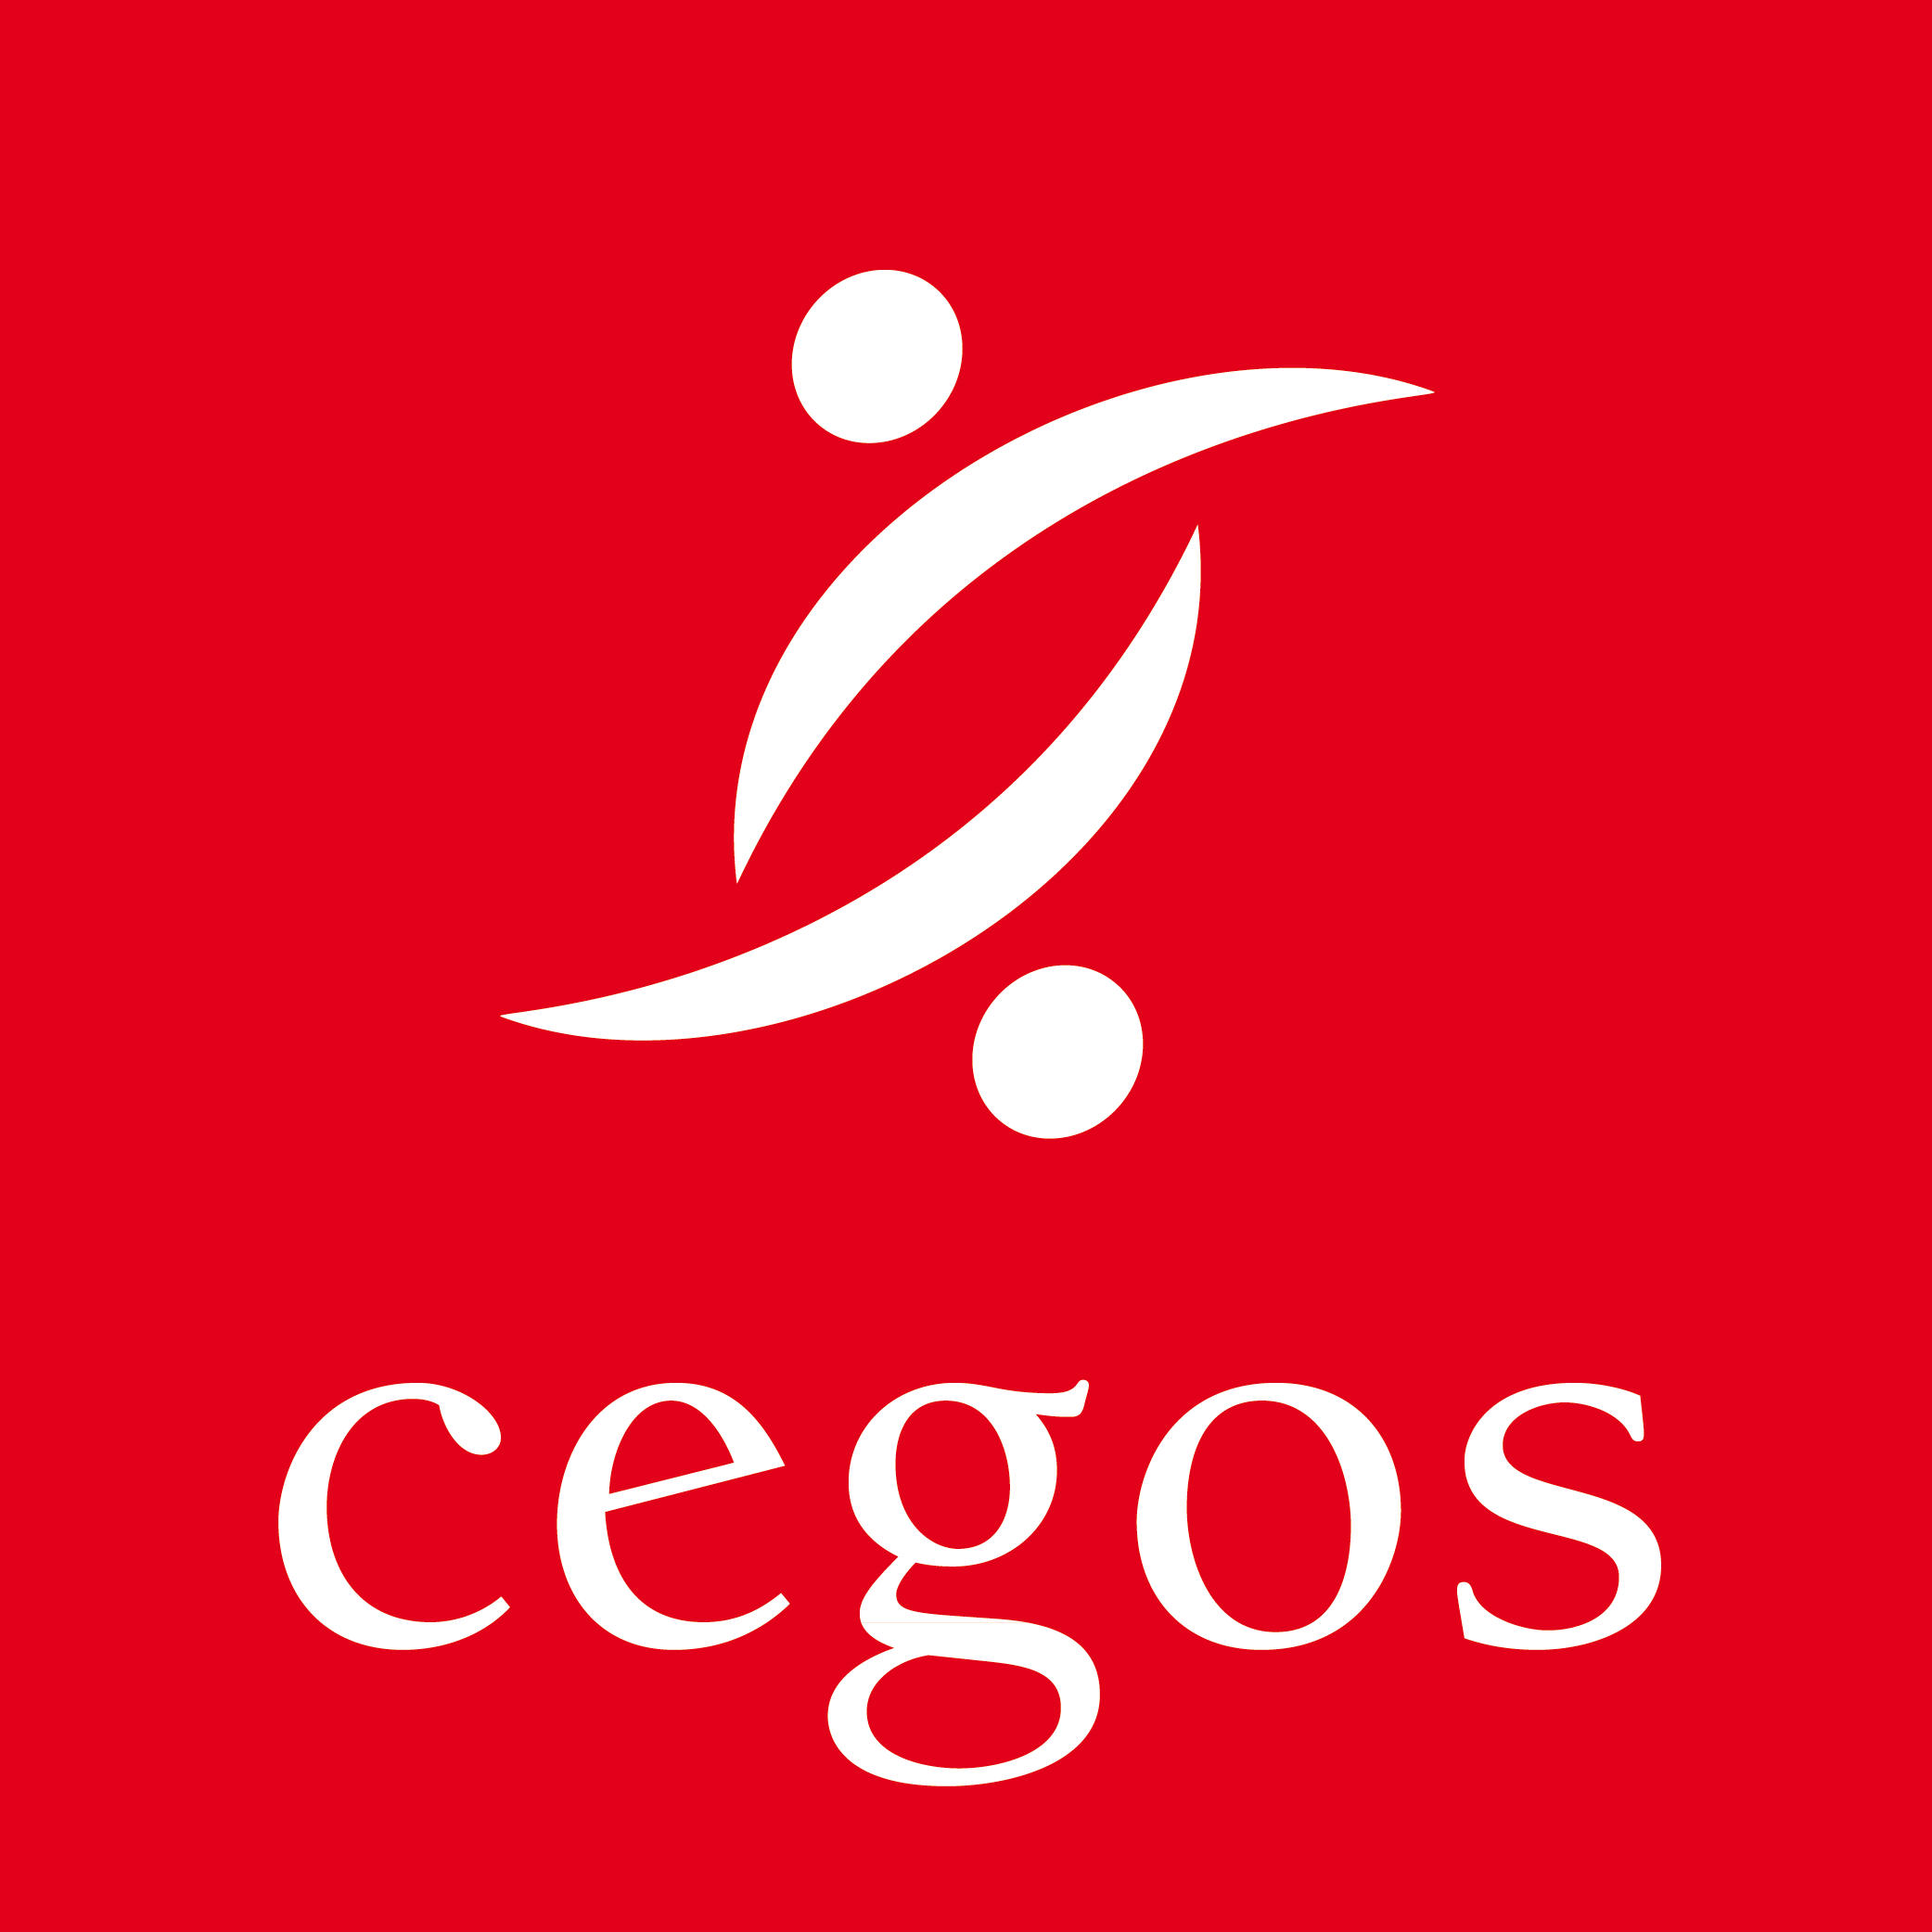 Image result for cegos logo